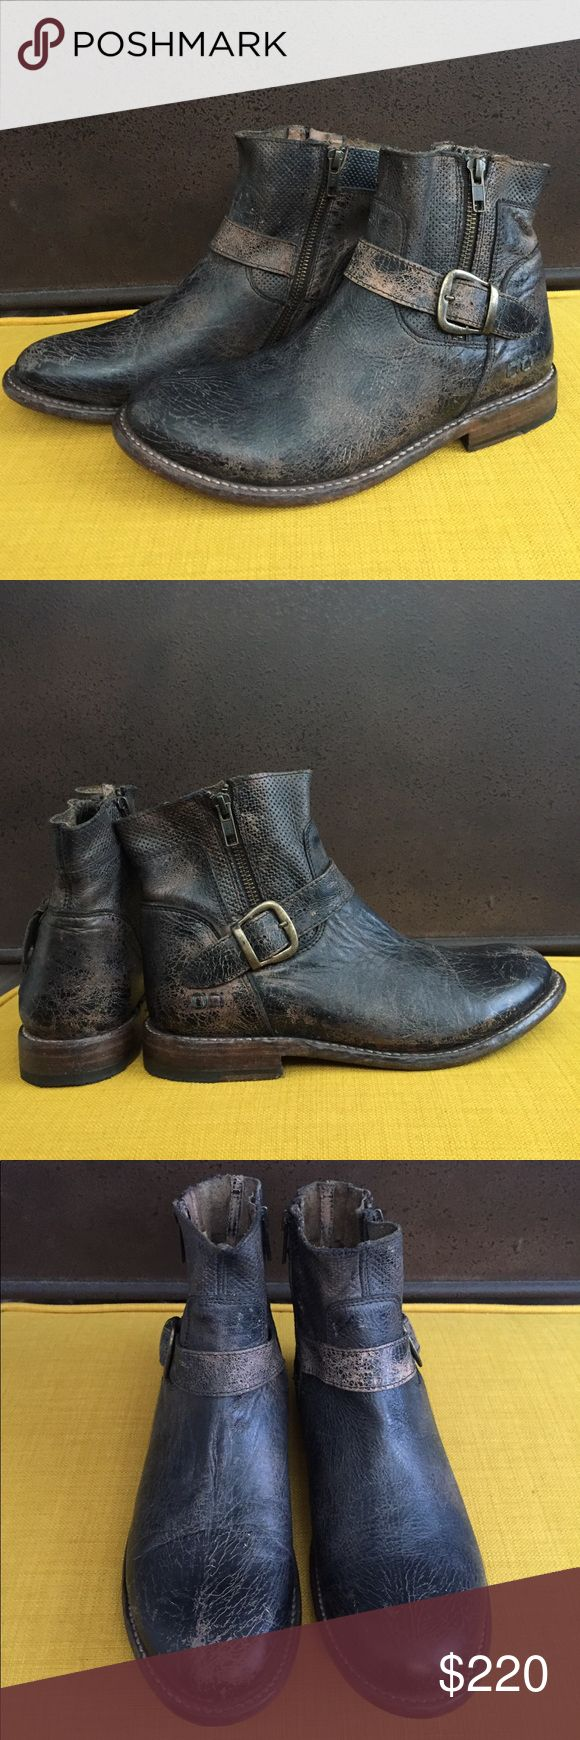 Bed Stu BECCA Zip Distressed Ankle Boots These are brand new w/out box.  They came as they are - distressed leather, as most Bed Stu items are.  Any flaws are part of the distressing process from the manufacturer.  Otherwise, there are no human flaws from wear at all.  They have not been worn outside of my house, only tried on.  They're great!  I will sell them only via Poshmark's app with their shipping policies, for my safety.  Smoke-free/Pet-free home Bed Stu Shoes Ankle Boots & Booties